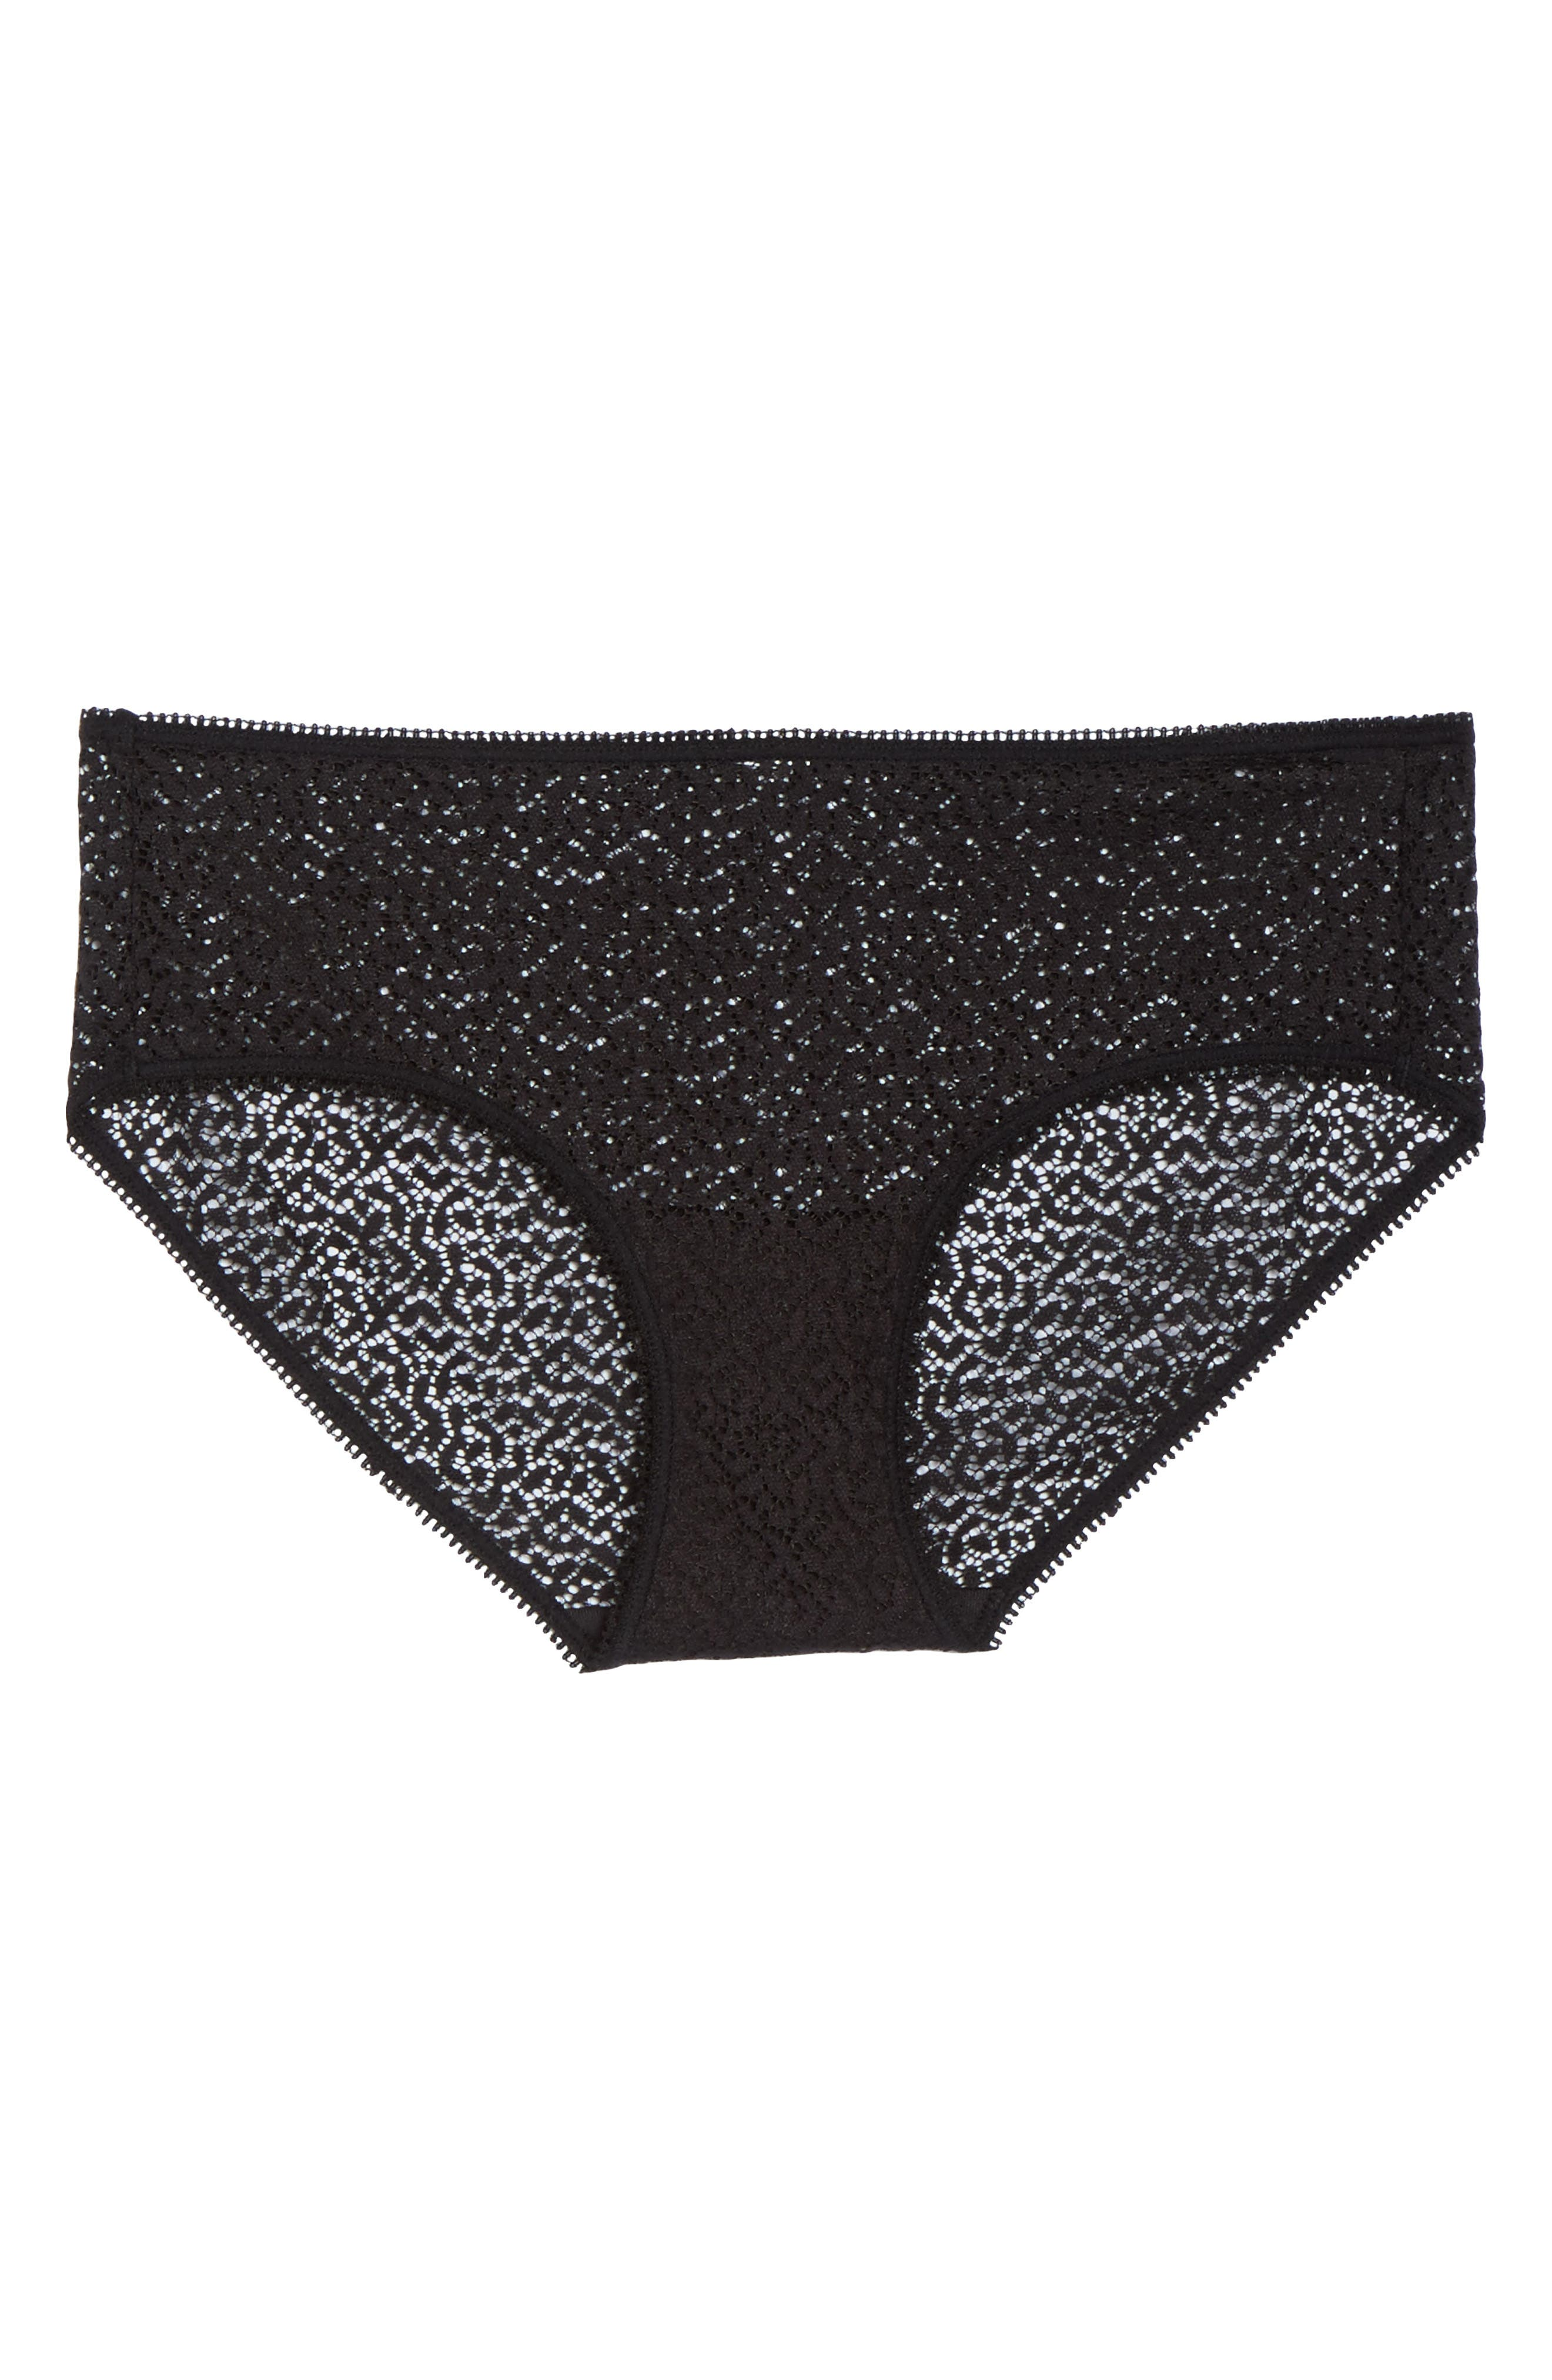 Modern Lace Hipster Panties,                             Alternate thumbnail 17, color,